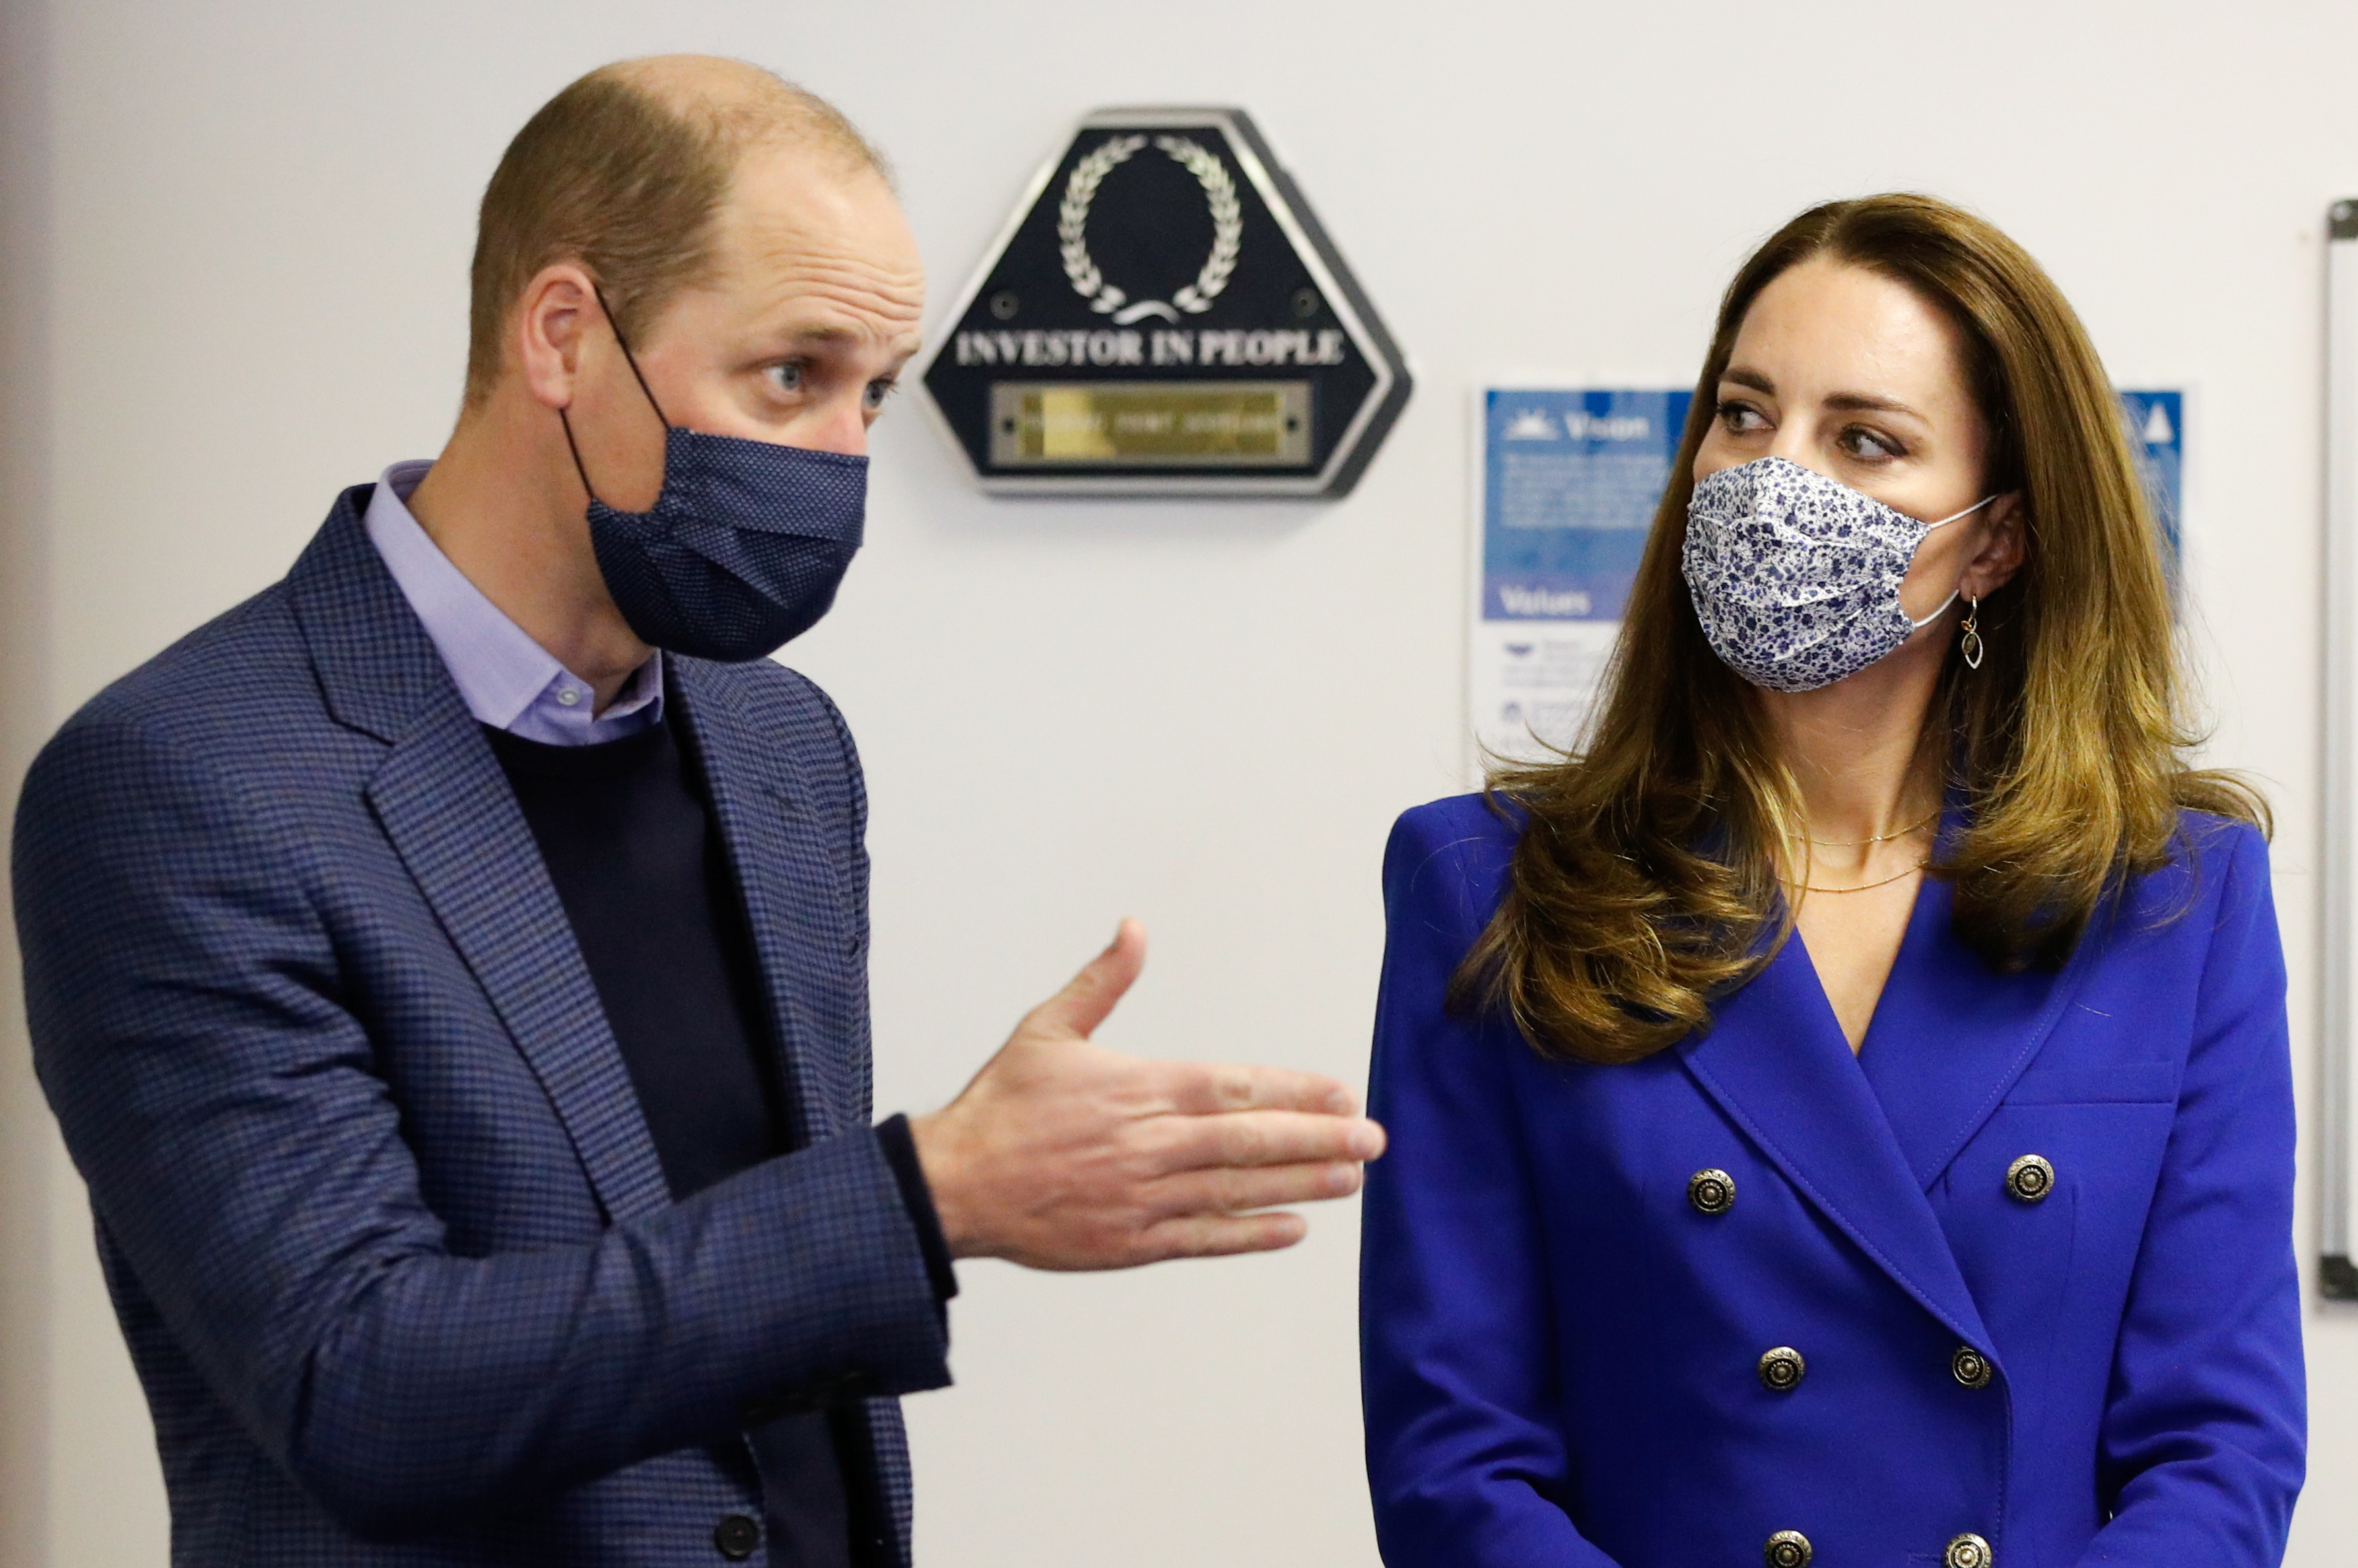 <p>The Duke and Duchess of Cambridge talk to service users during a visit to Turning Point Scotland's social care centre in Coatbridge, North Lanarkshire, to hear about the vital support that they provide to those with complex needs, including addiction and mental health challenges. Picture date: Monday May 24, 2021.</p>